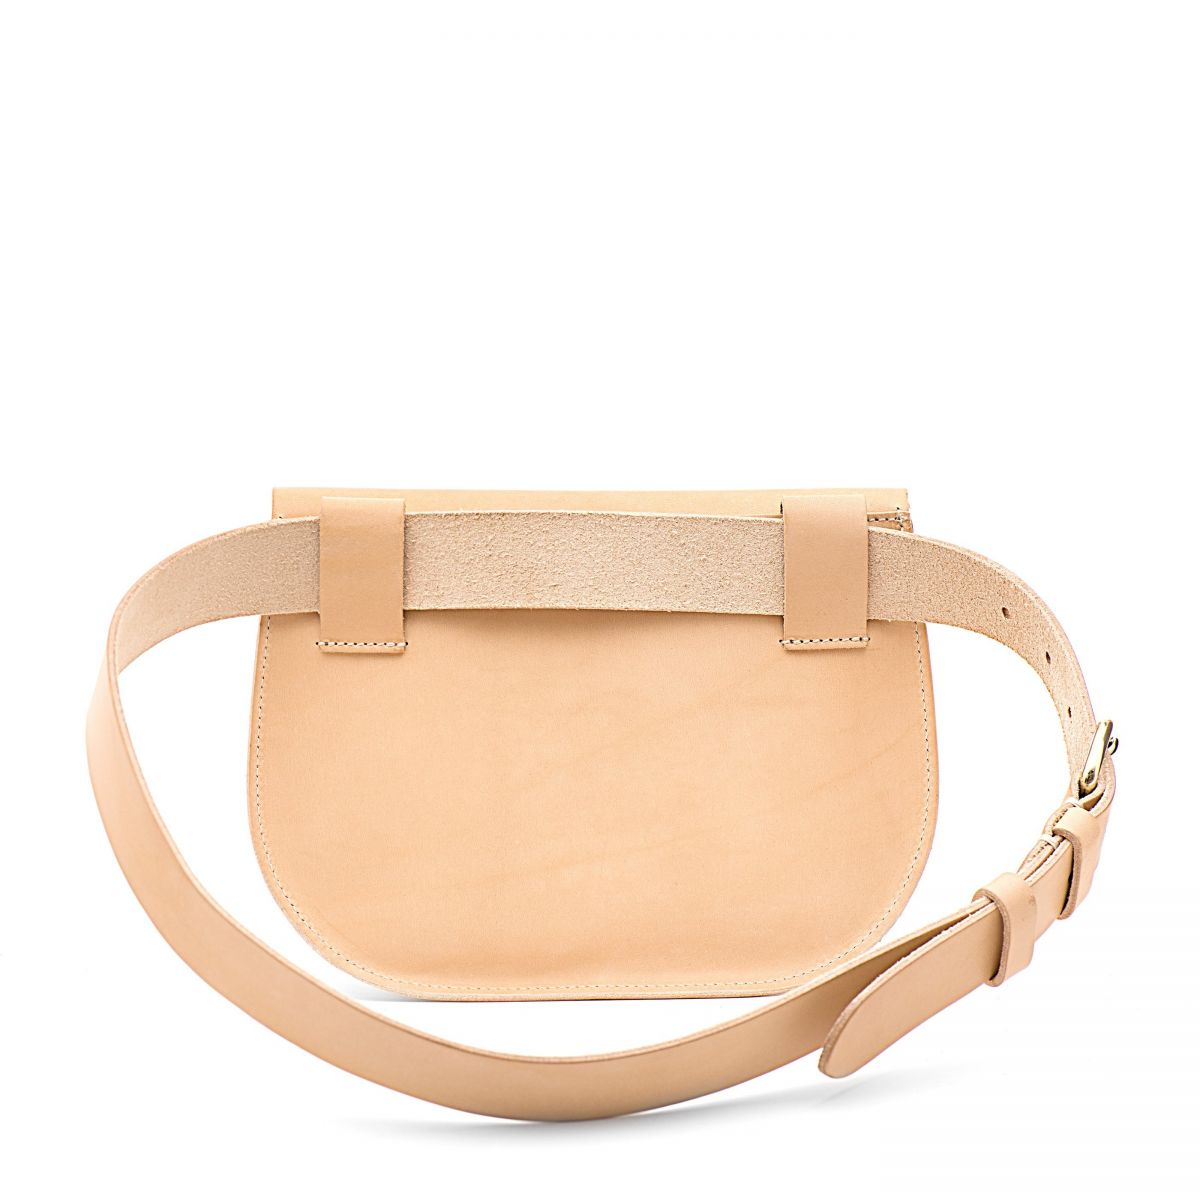 Women's Belt Bag Parione in Cowhide Double Leather BBB026 color Natural | Details